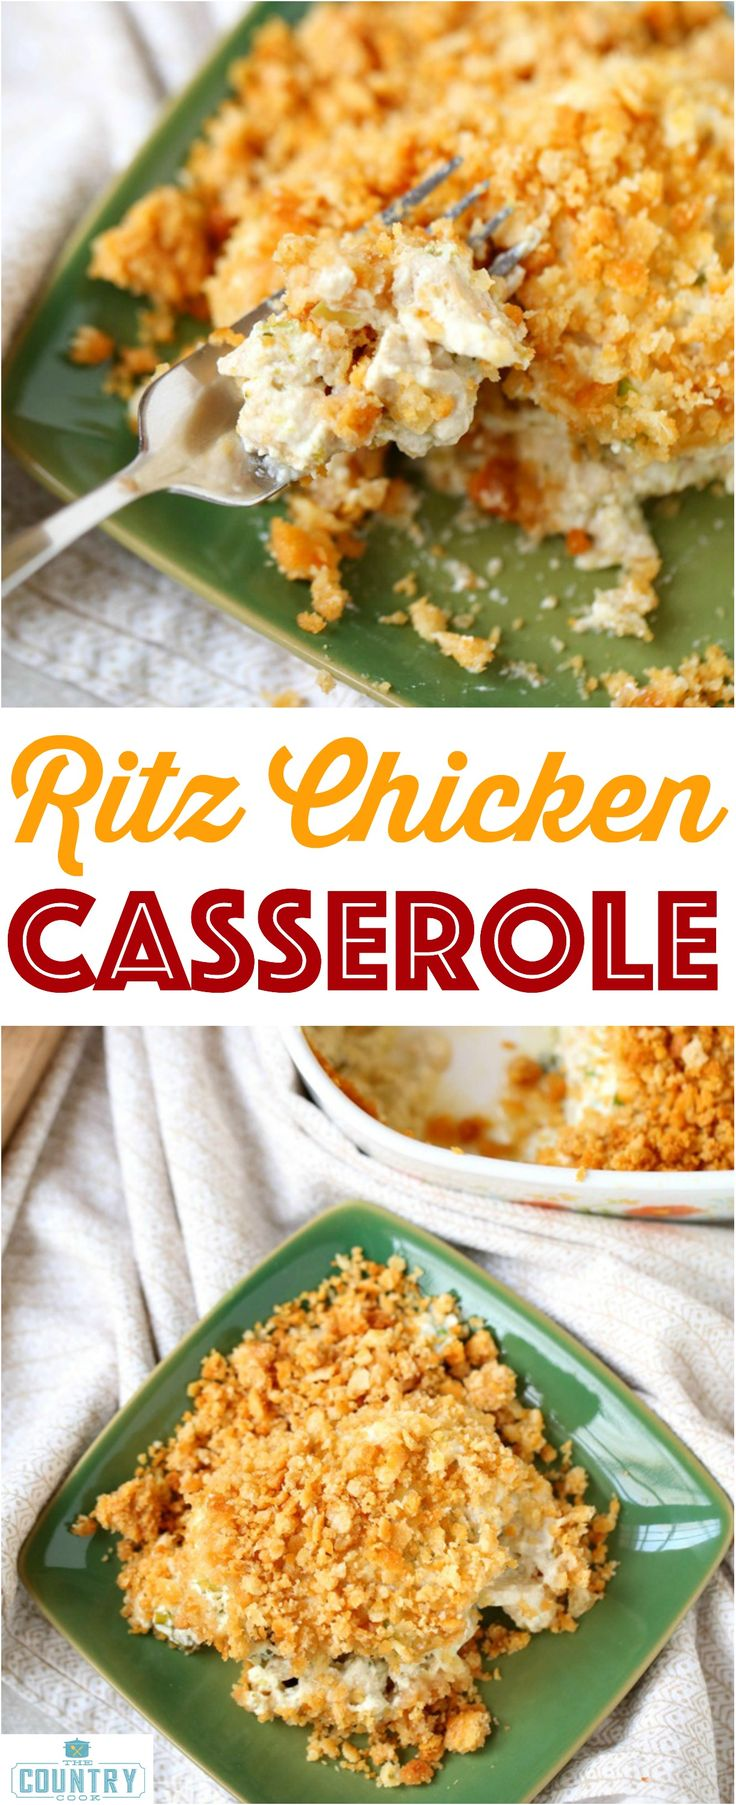 Ritz Chicken Casserole recipe from The Country Cook - only 6 ingredients . A huge family favorite - the best! (Little Ingredients Recipes)